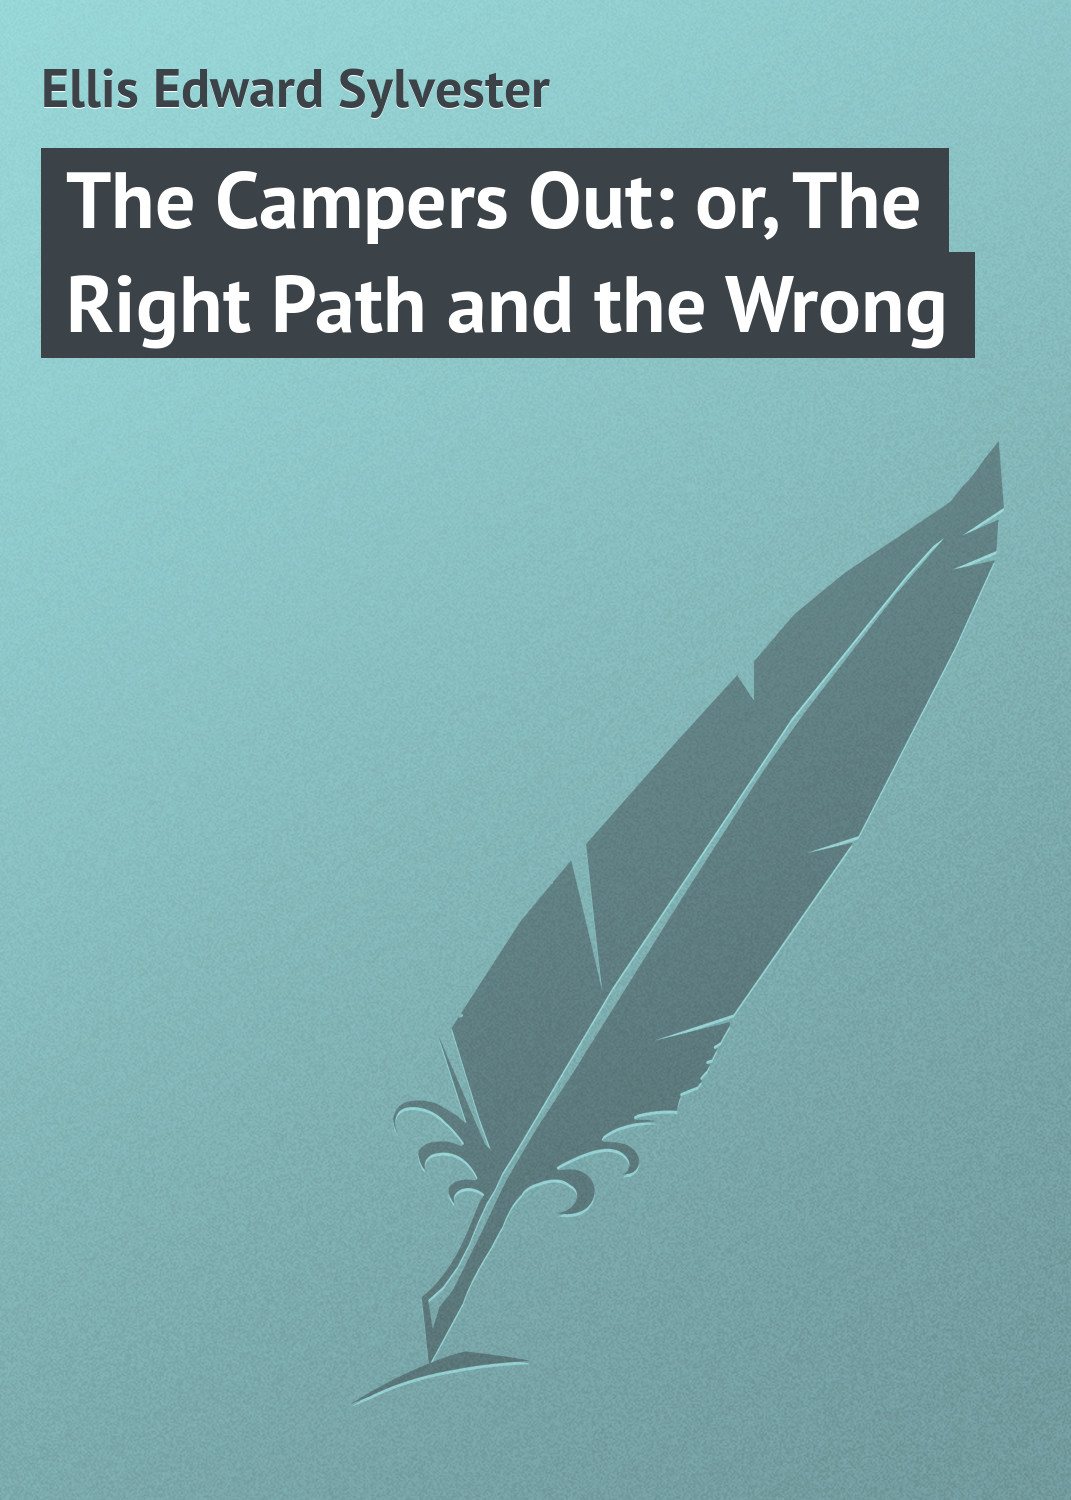 Ellis Edward Sylvester The Campers Out: or, The Right Path and the Wrong the well path